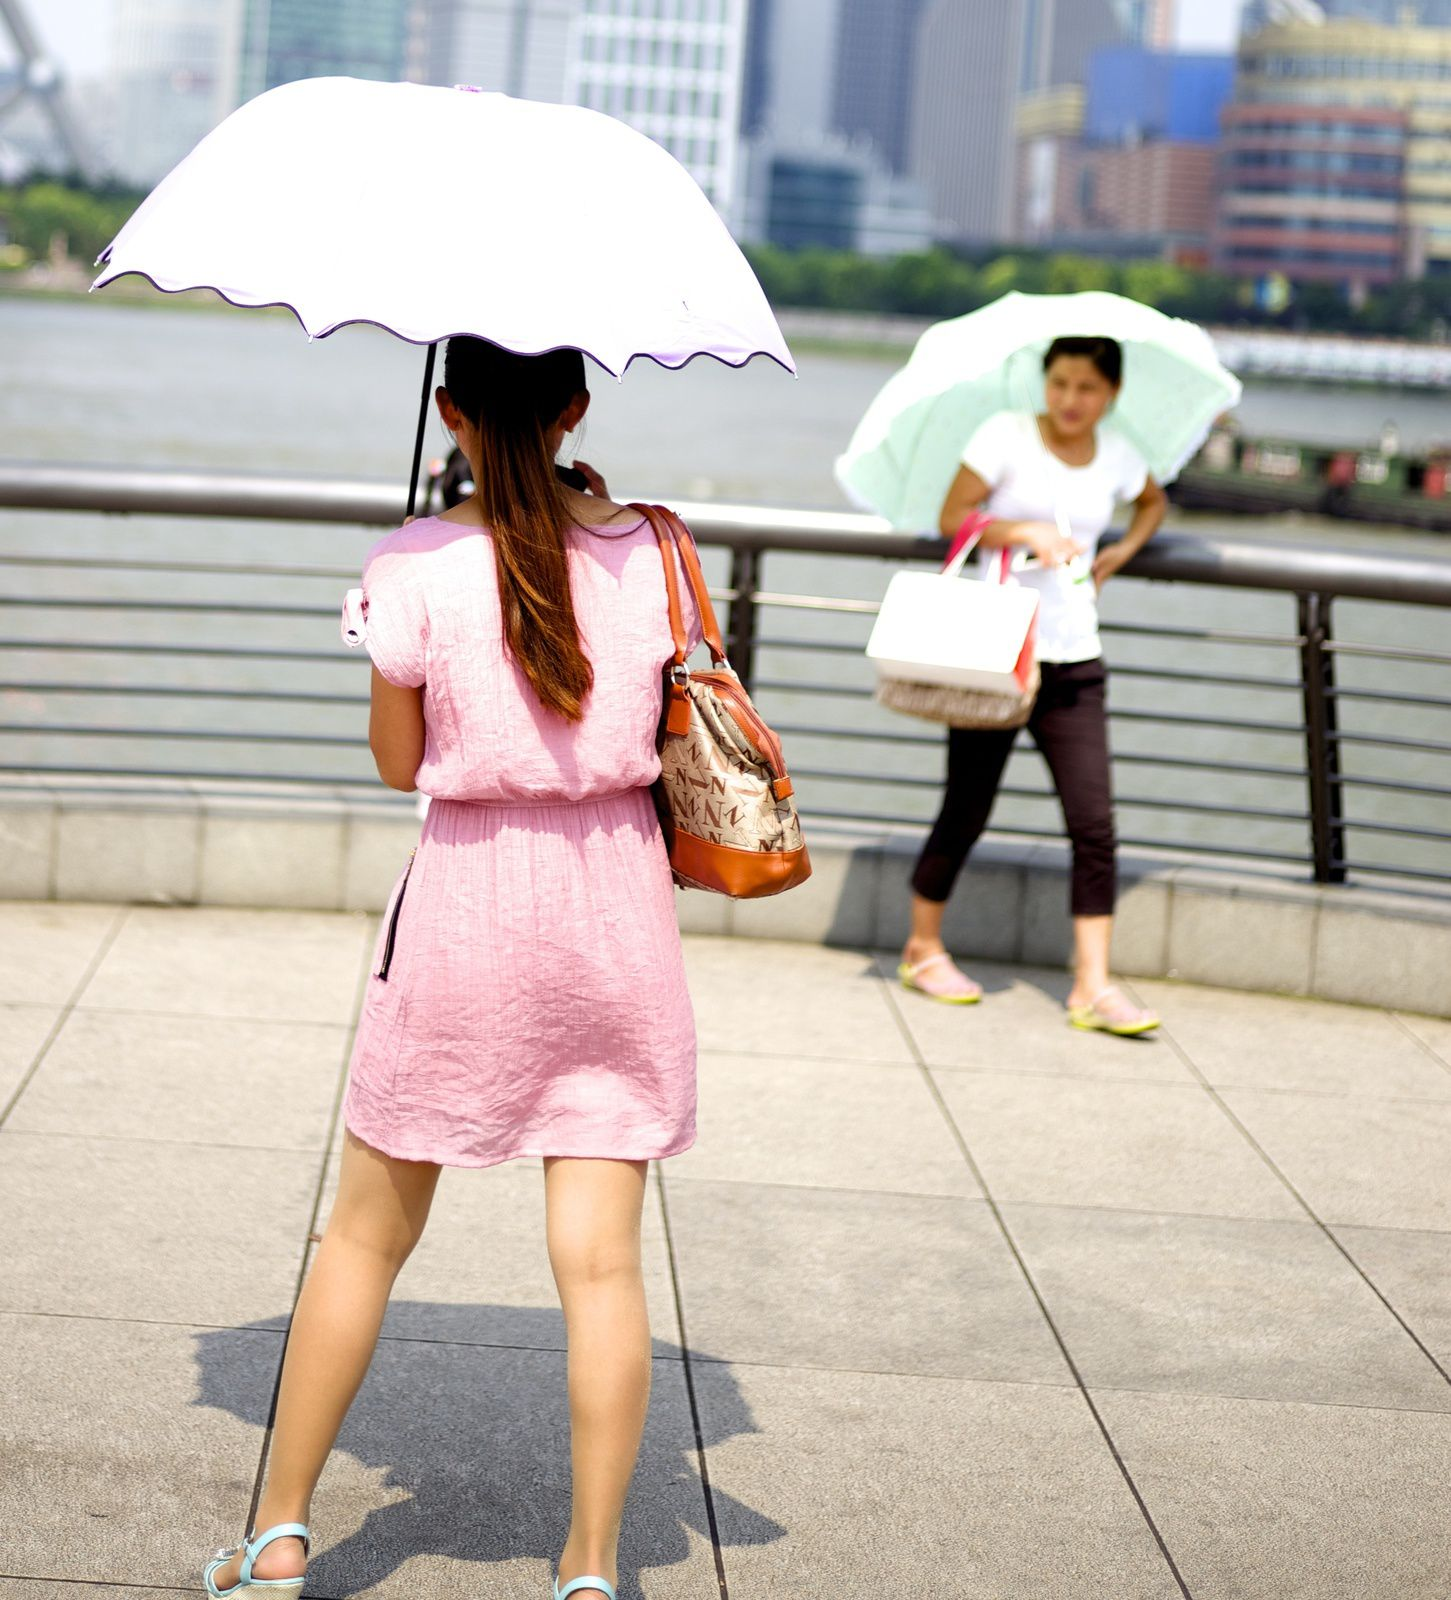 Good weather and Umbrellas in Shanghai…